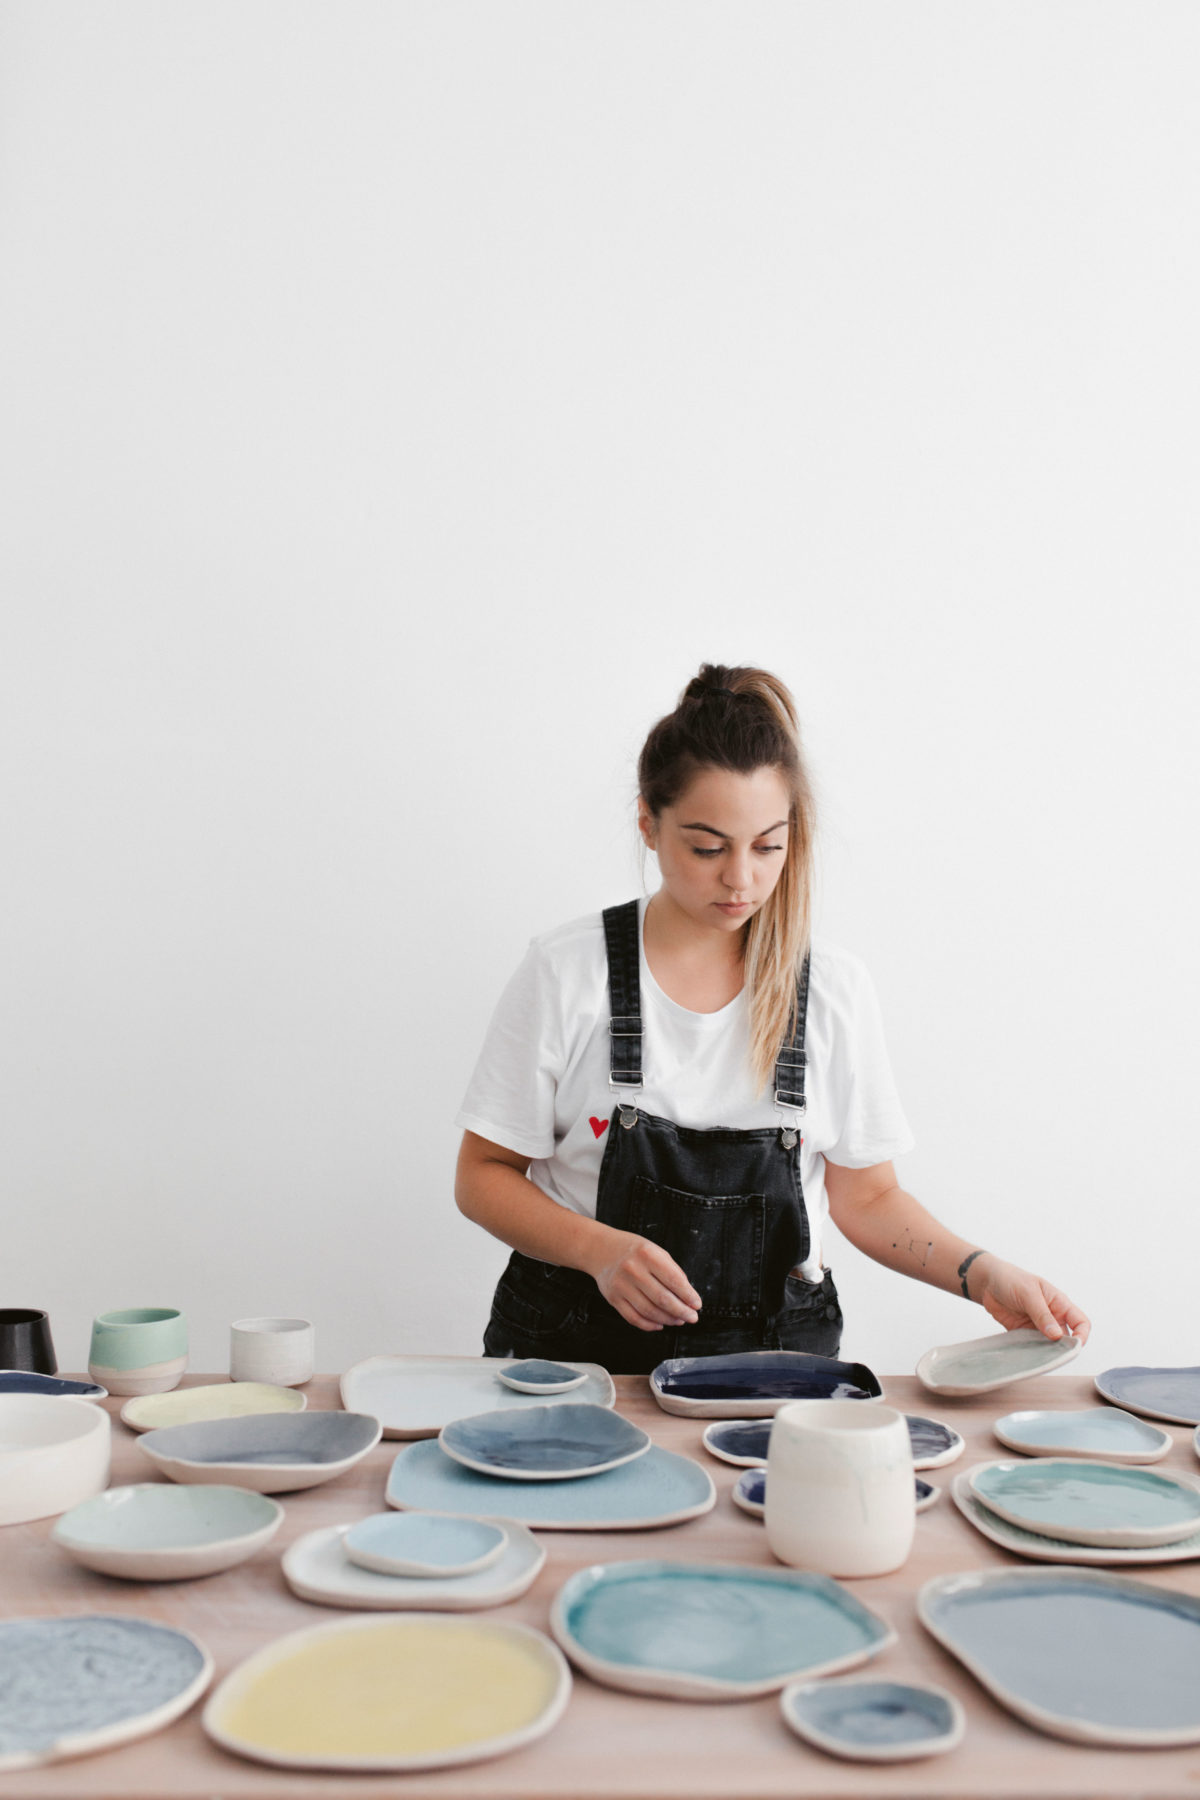 WOMEN WHO CREATE: HANA KARIM IS CONQUERING CERAMICS FOR CREATIVE EXPRESSION